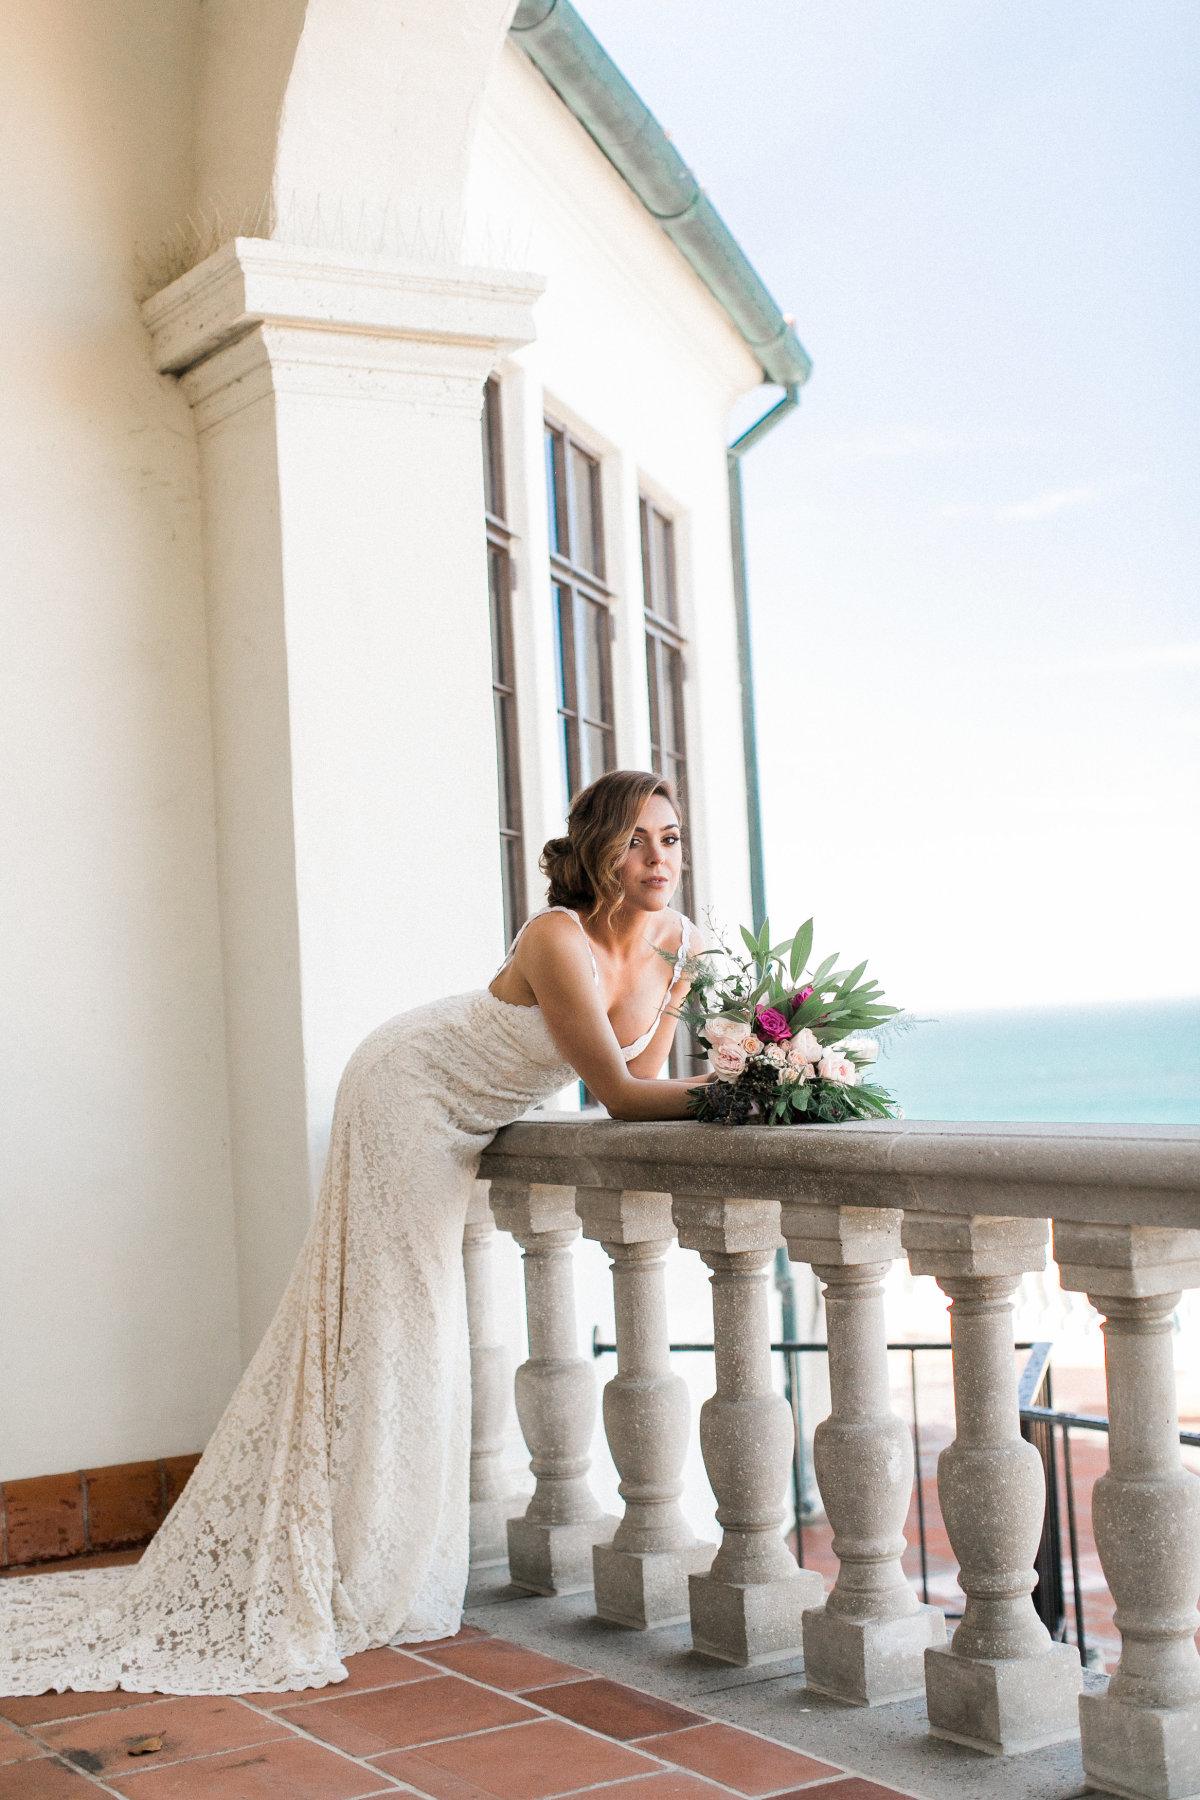 bohemian-luna-of-the-sea-editorial-set-in-palos-verdes-showing-backless-dresses-florals